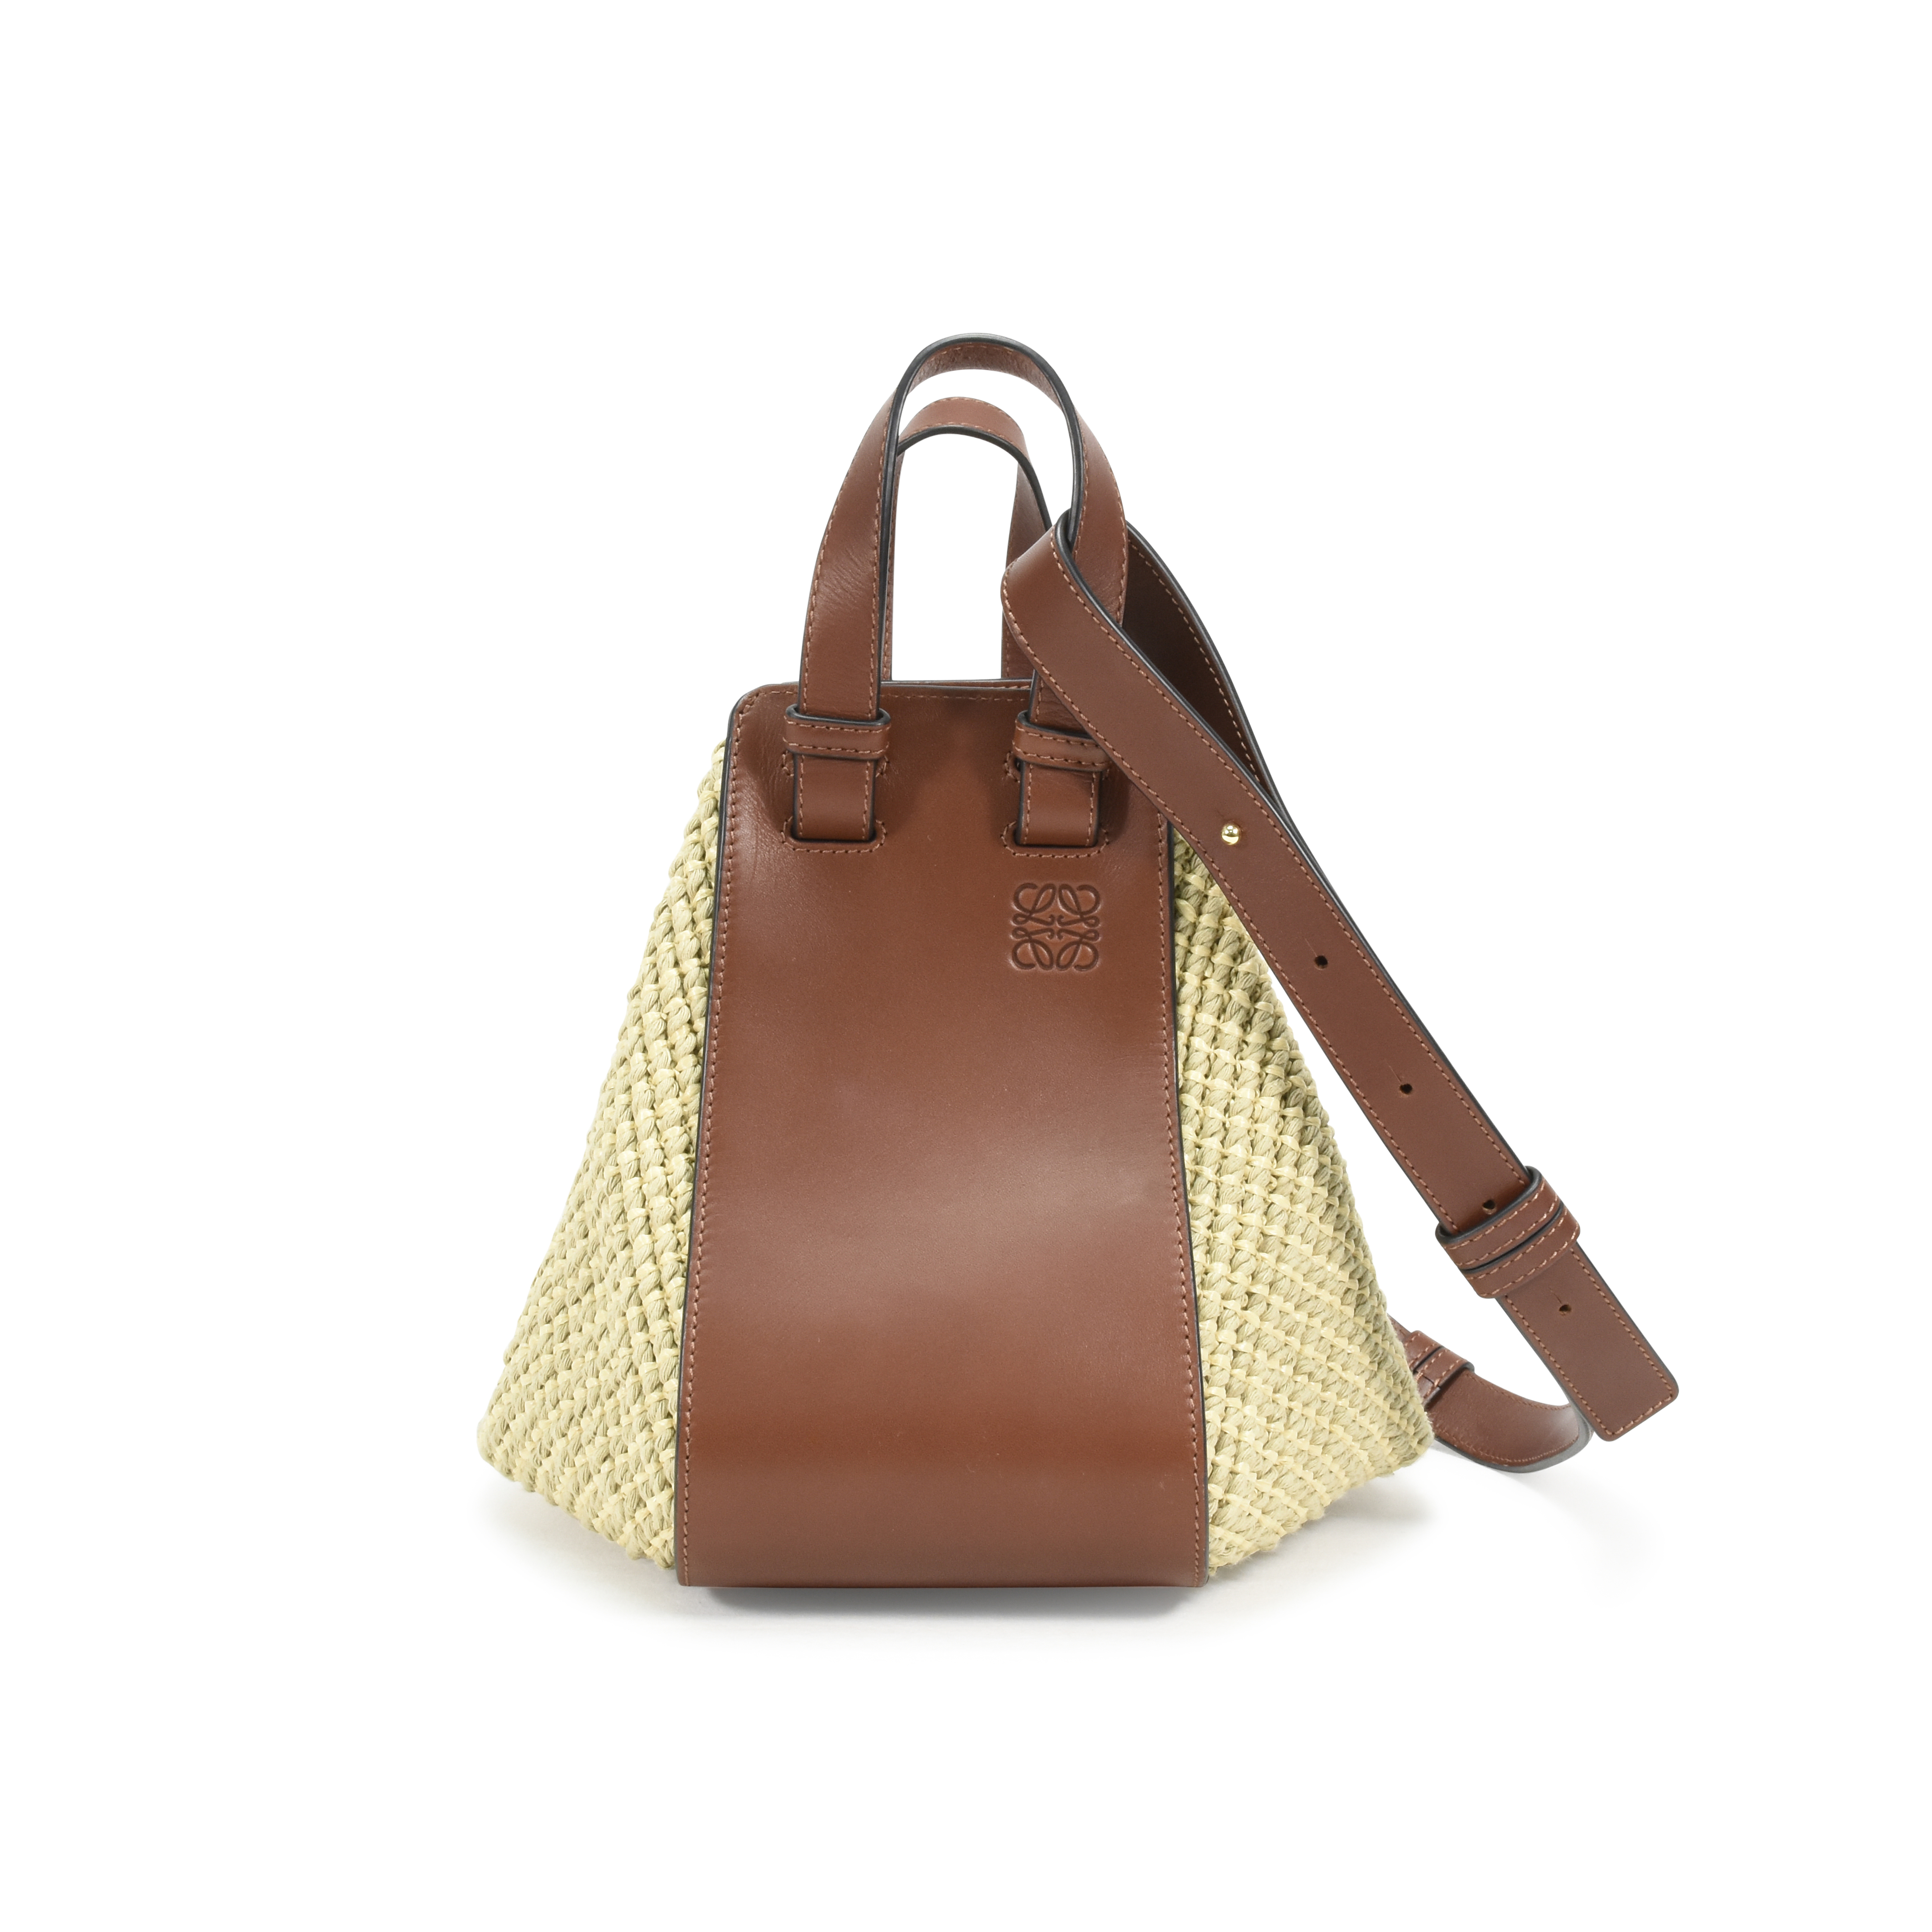 ce291c7004e39e Authentic Second Hand Loewe Hammock Small Leather & Raffia bag  (PSS-139-00021) | THE FIFTH COLLECTION